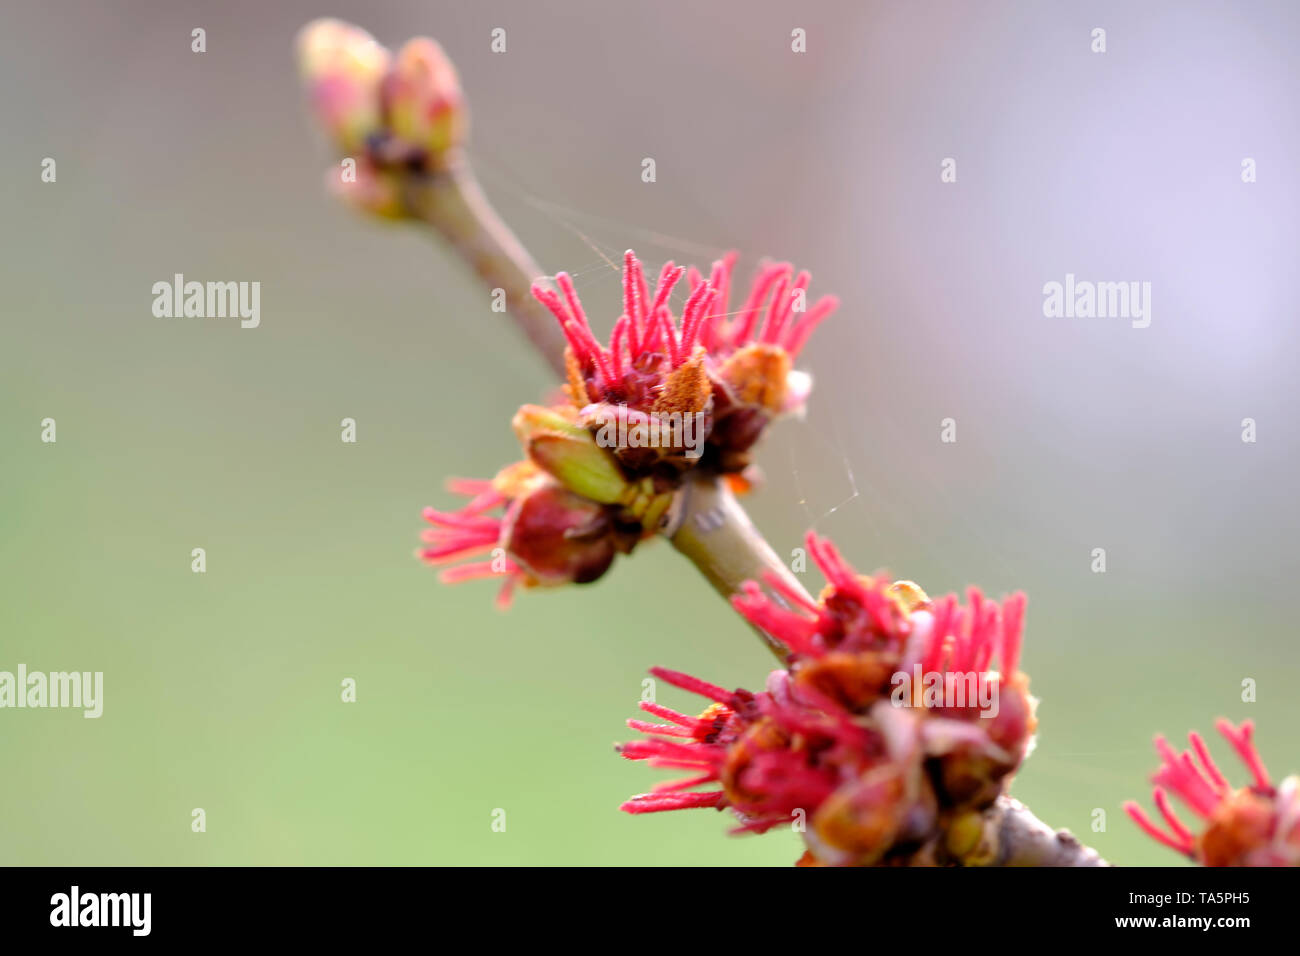 Female flowers of black alder deciduous trees of the birch family close-up macro photography - Stock Image